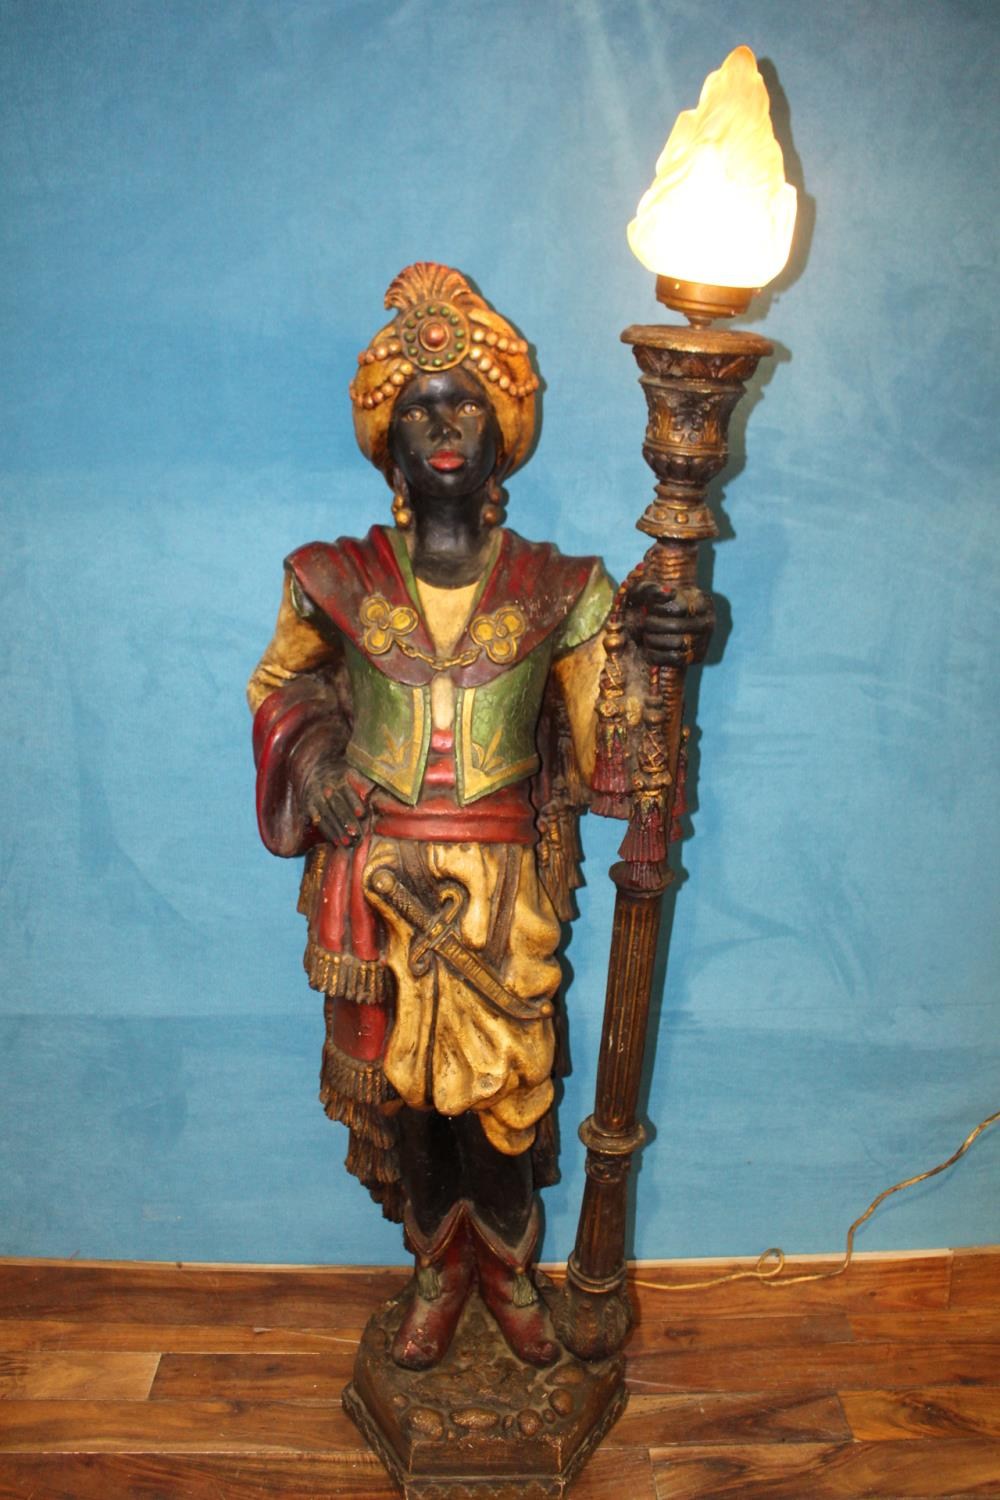 Carved wooden standard lamp